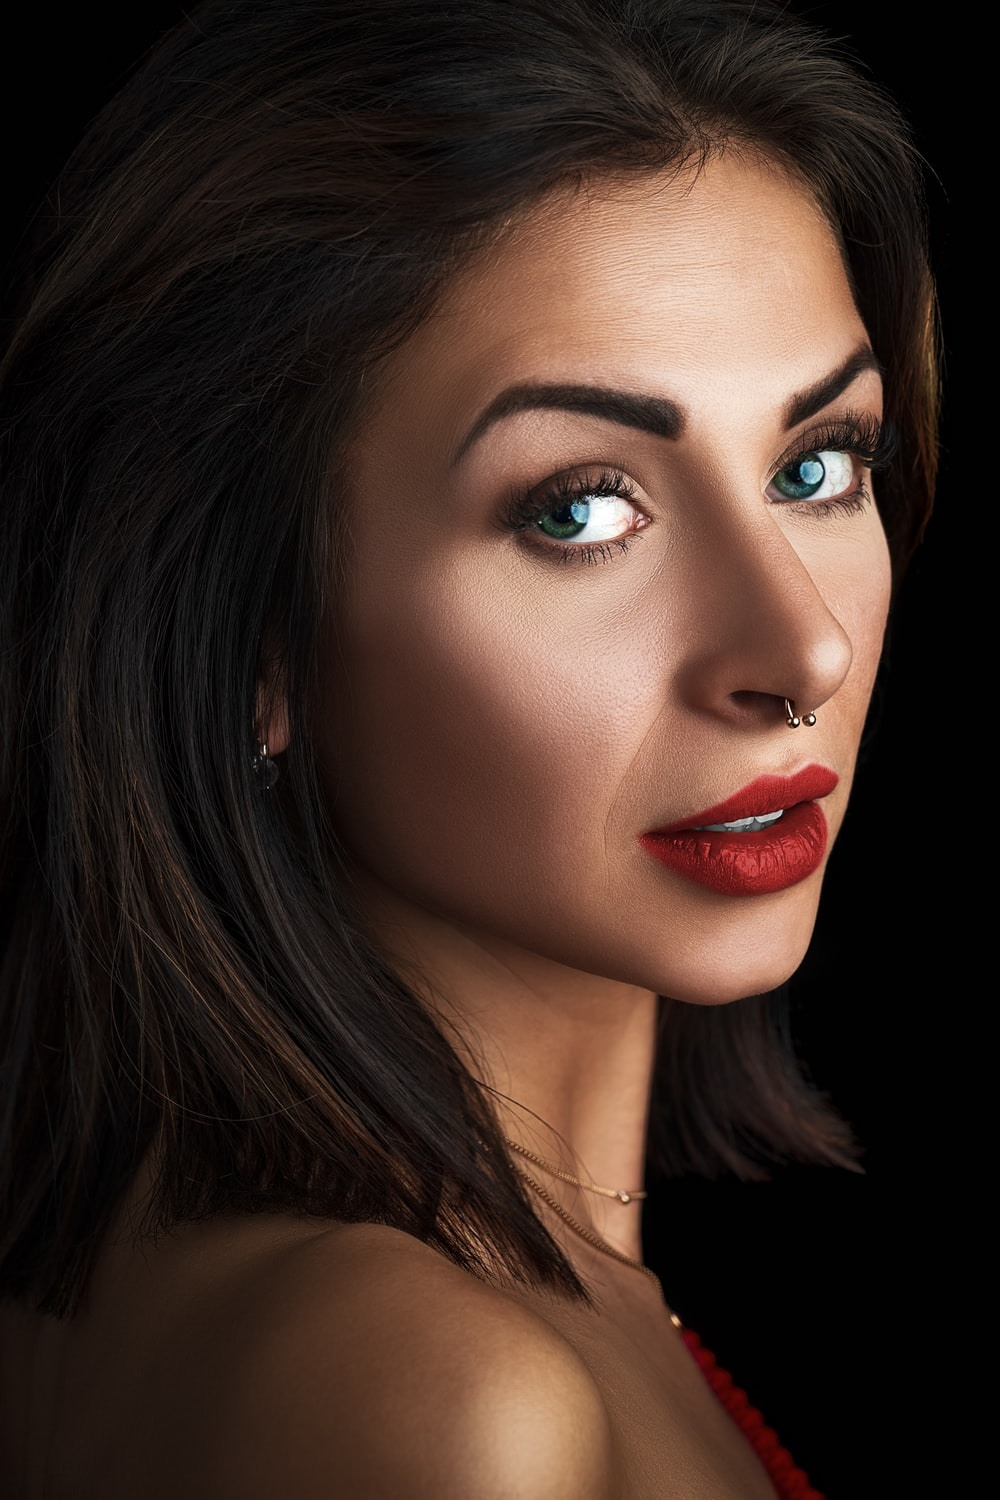 woman wearing red lipstick with piercing on nose